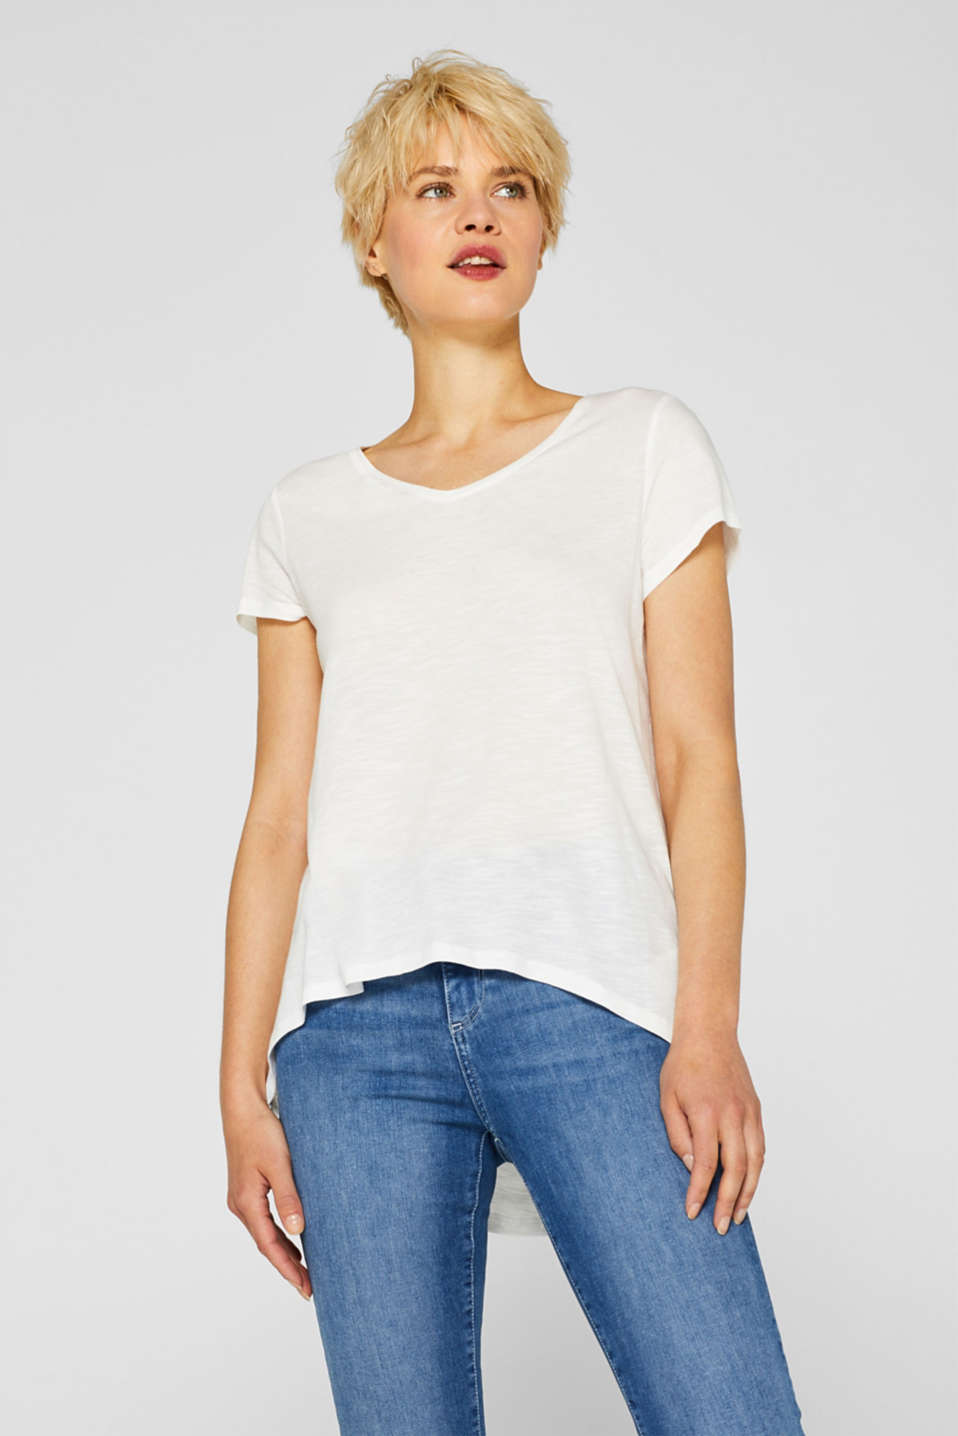 Esprit - Slub jersey top with a rounded, high-low hem